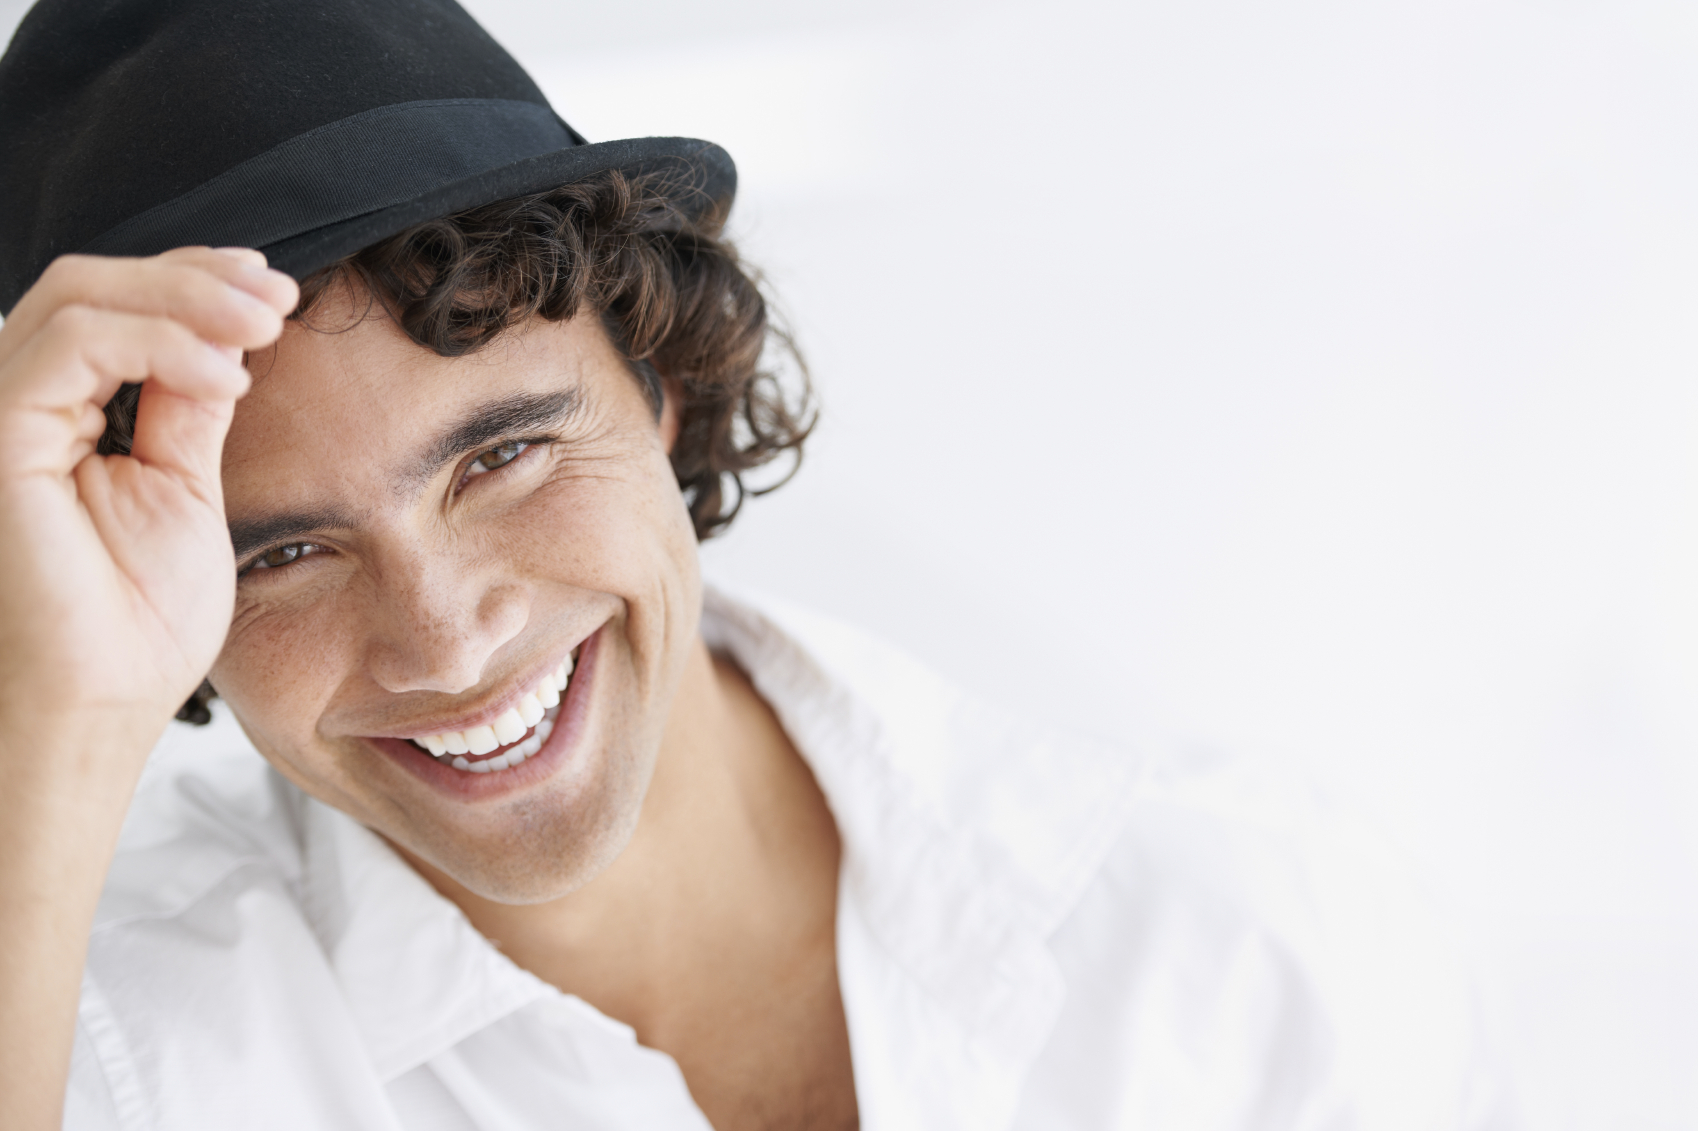 Guy with hat smiling